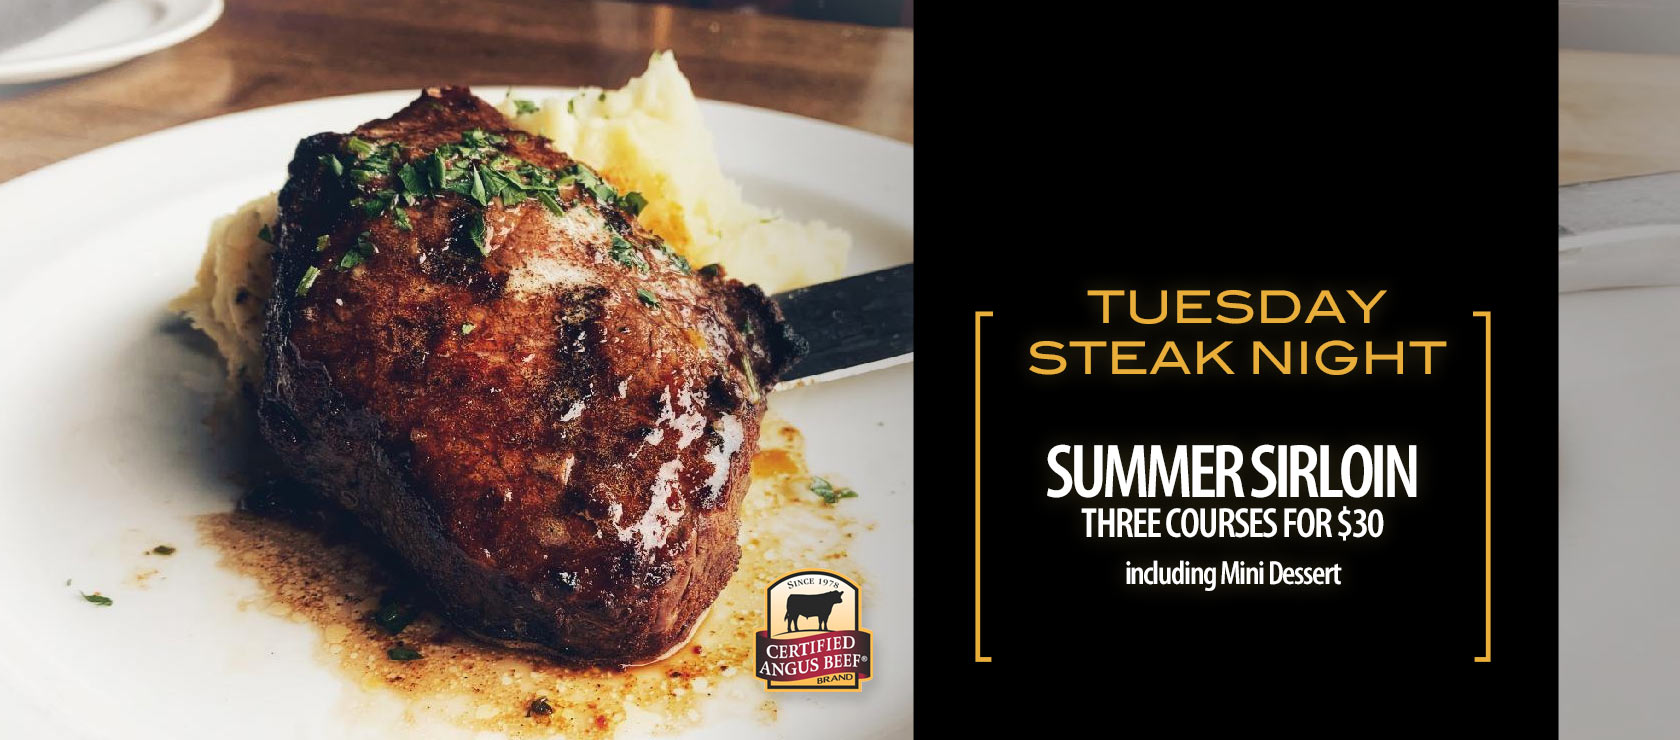 Tuesday Steak Night Three courses for $30 including Mini Dessert